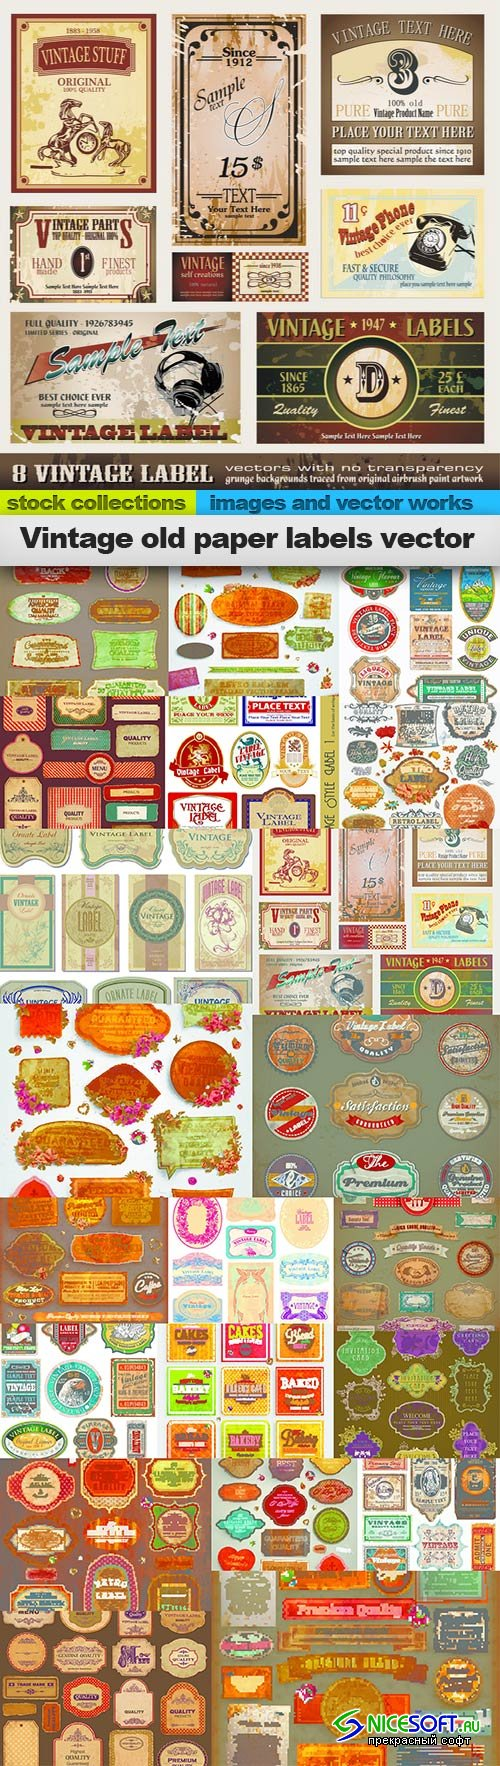 Vintage old paper labels vector, 25 x EPS